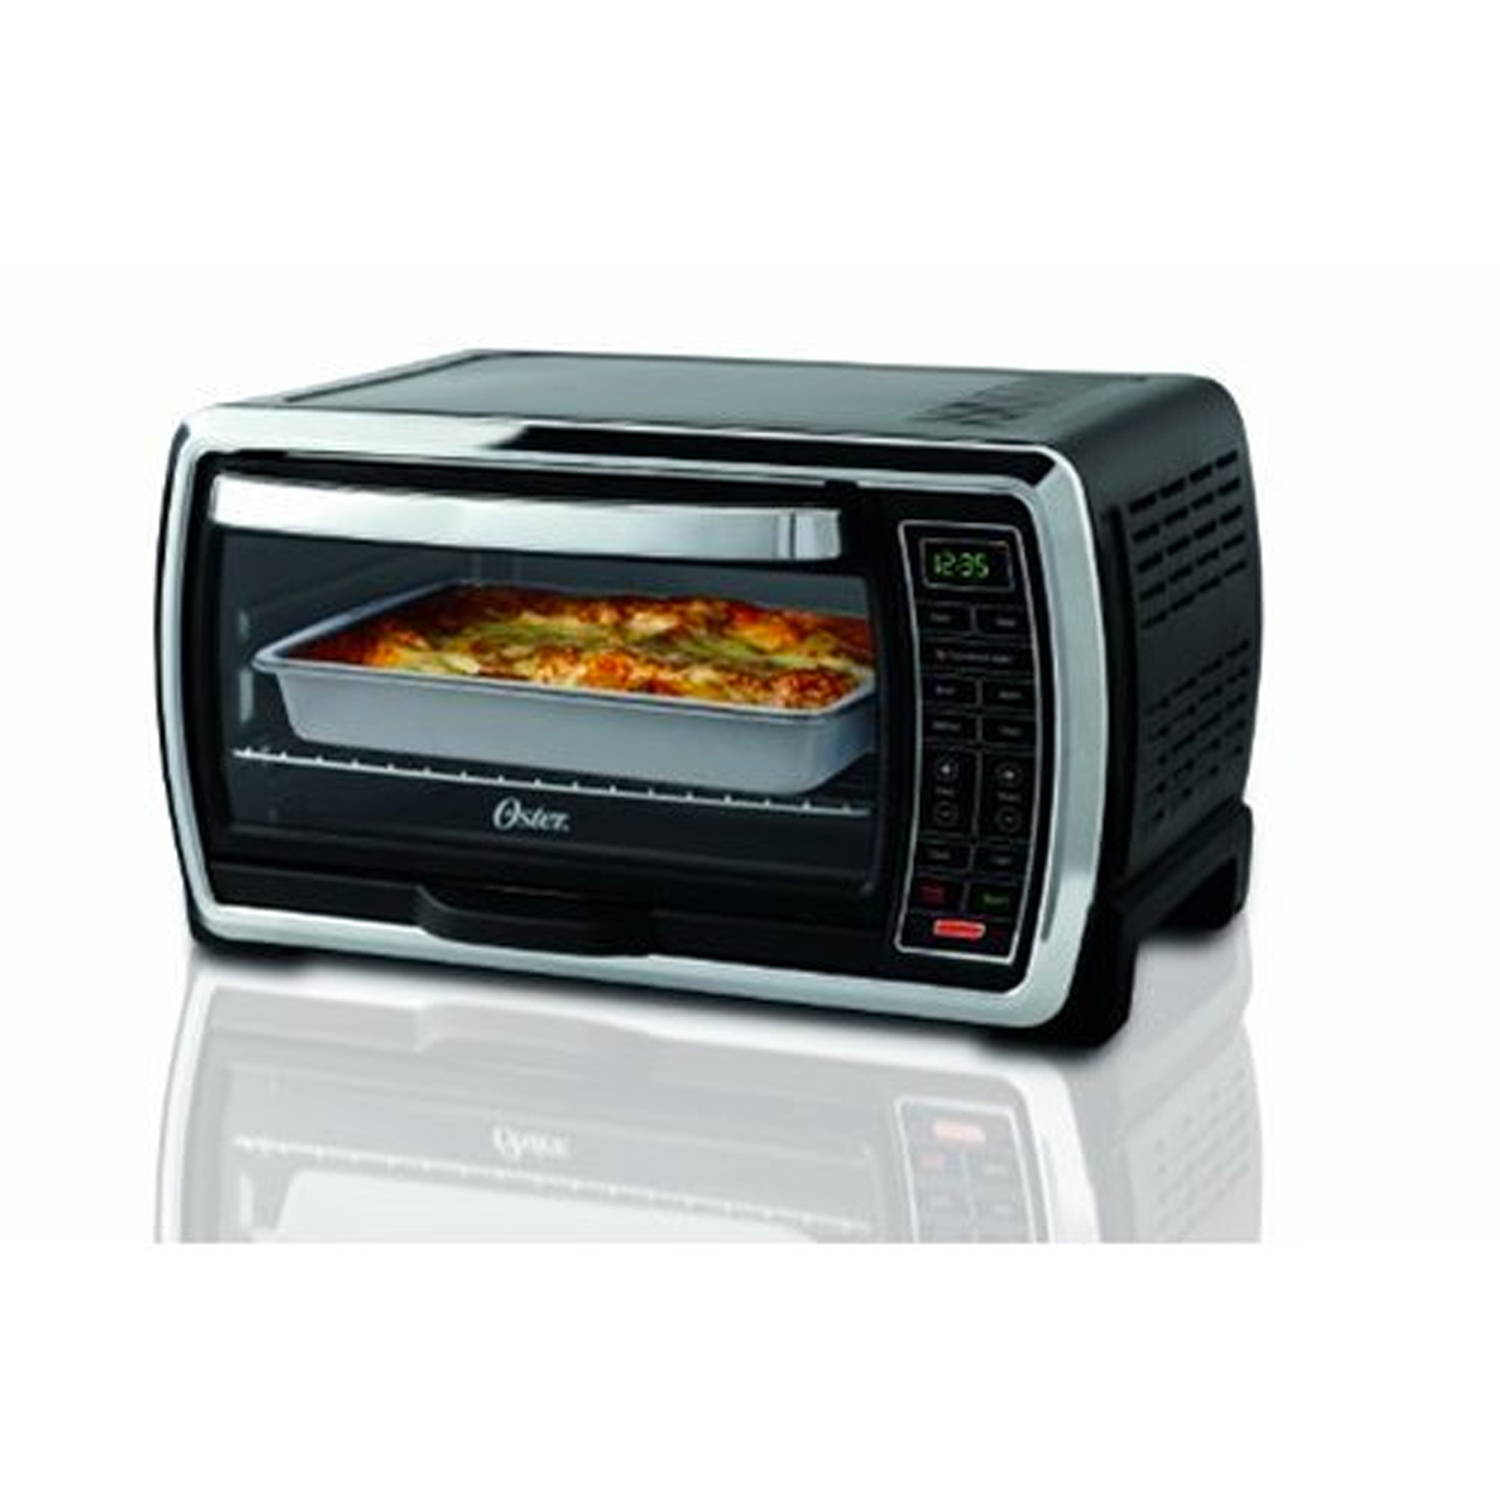 Oster digital convection toaster from Walmart